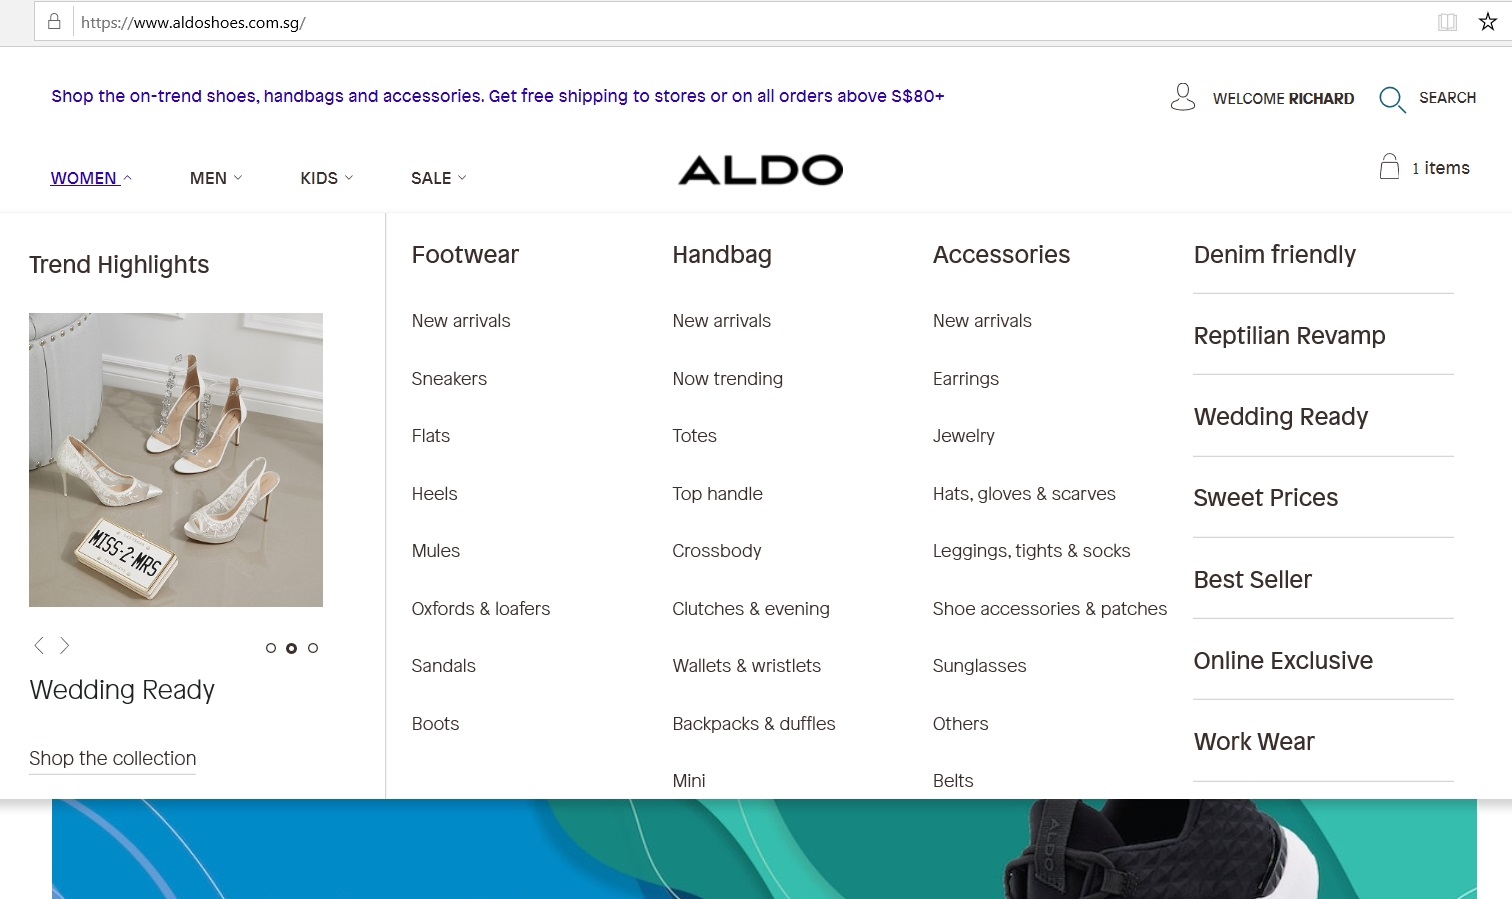 Aldo product category dropdown.